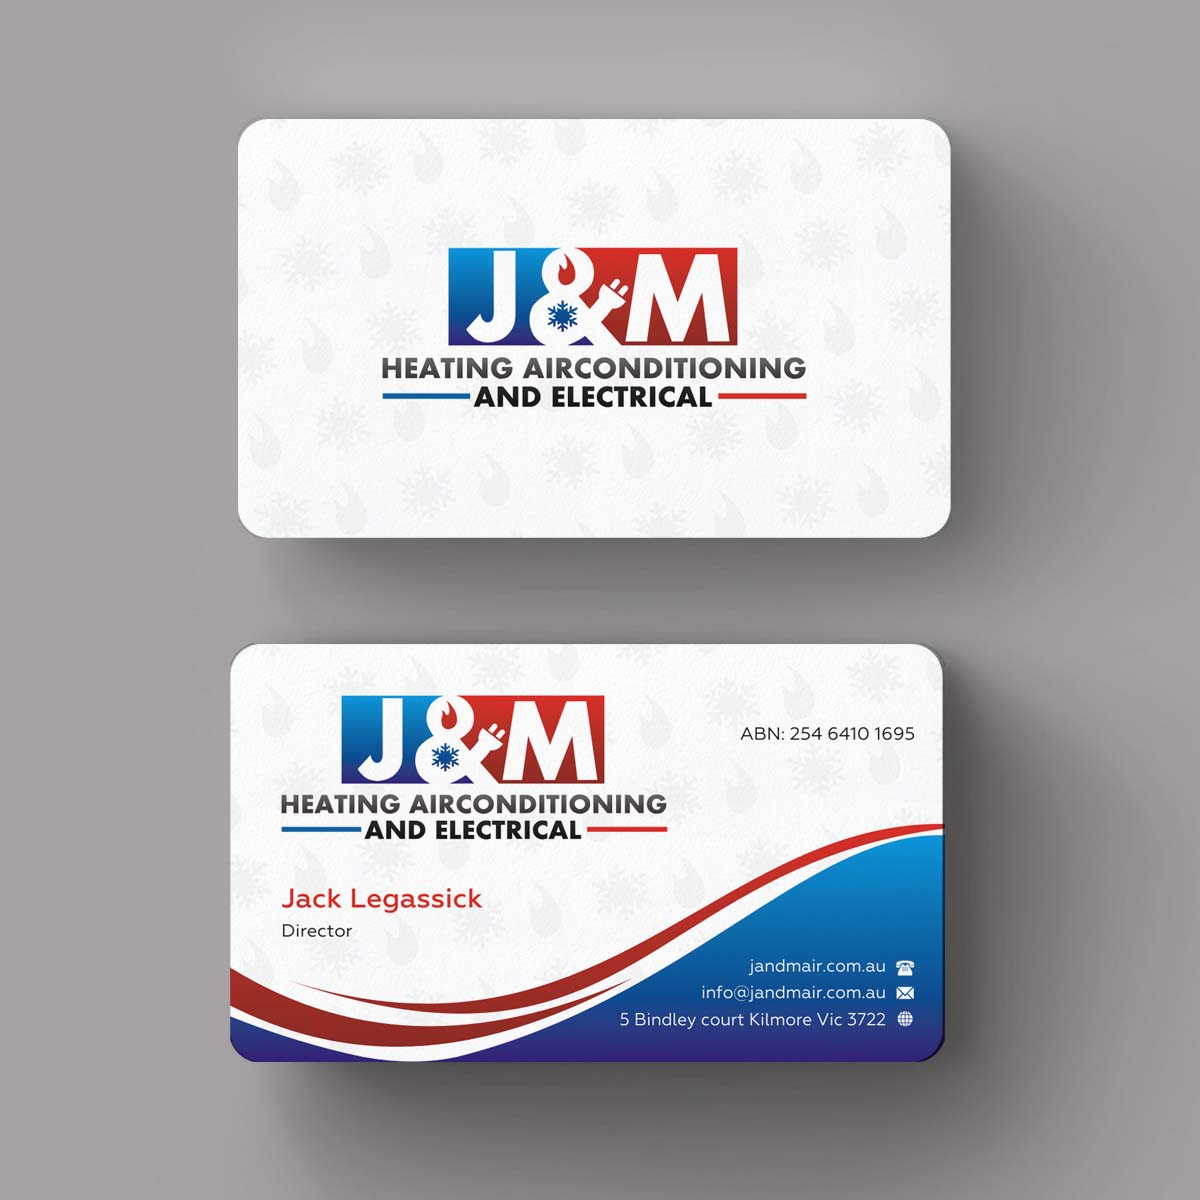 bold serious business card design for j&m heating airconditioning